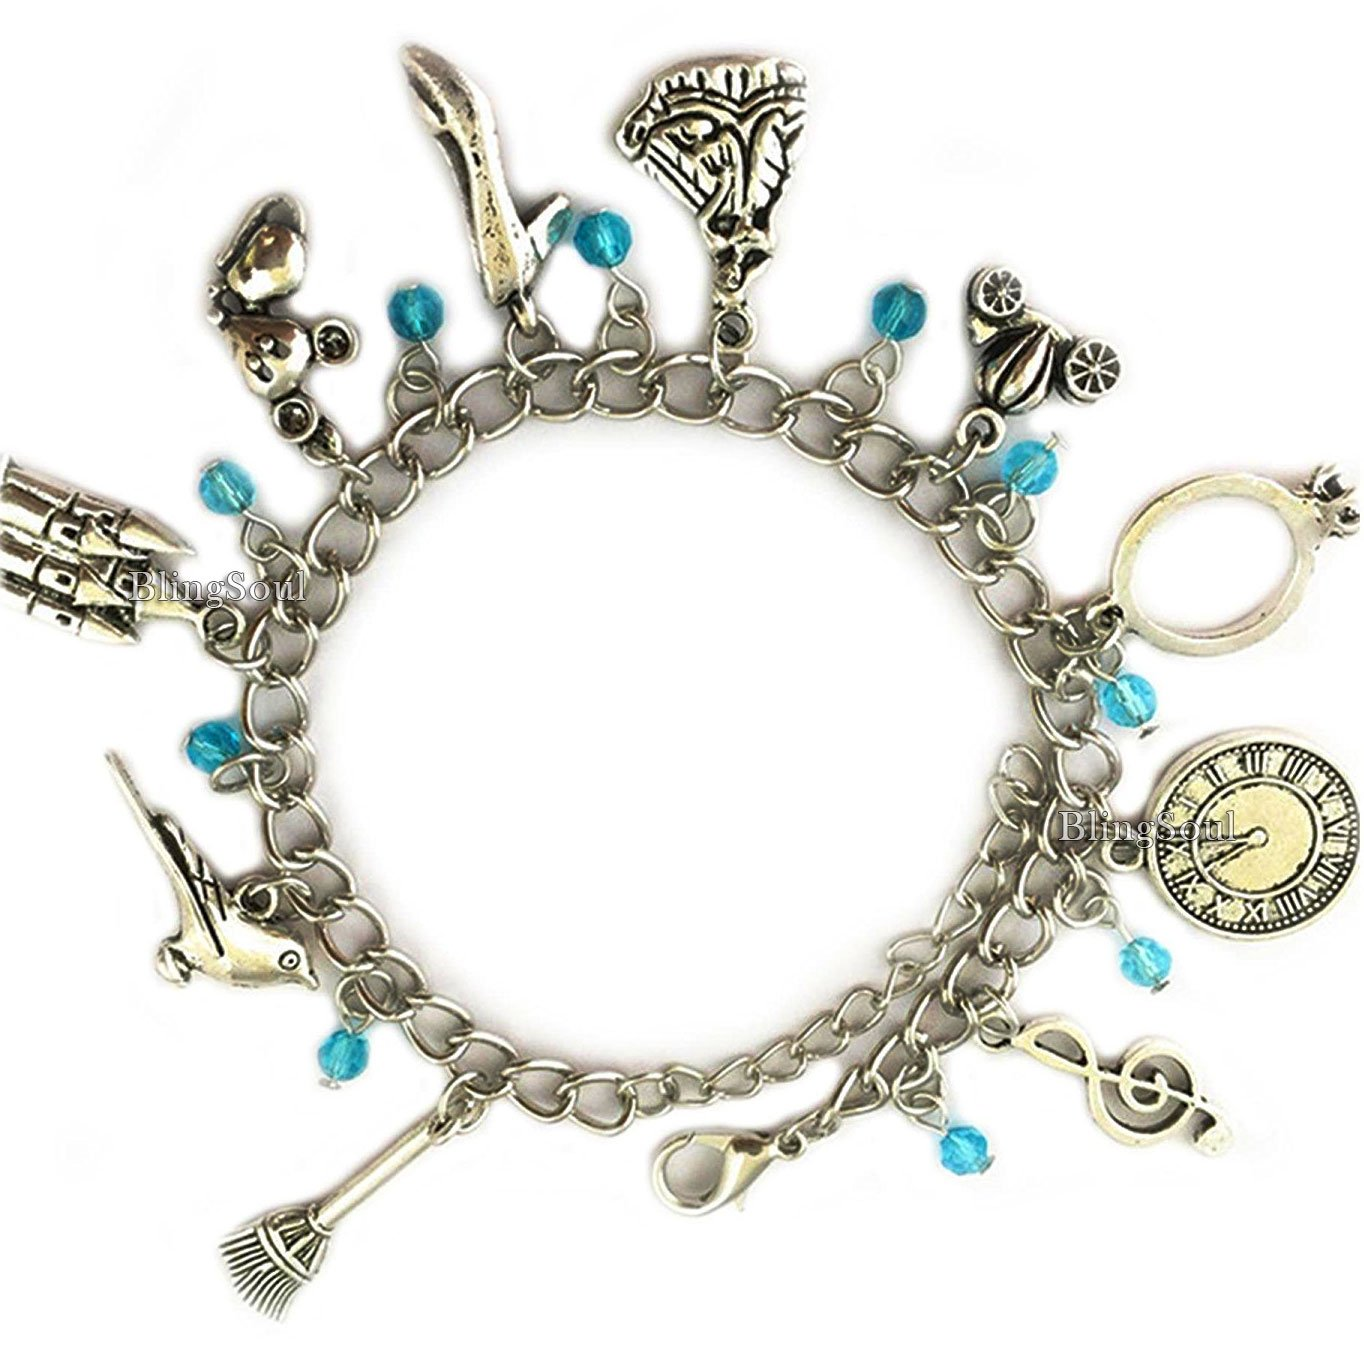 Disney Cinderella Charm Bracelet Jewelry - Cinderella Gifts for Women by BlingSoul (Image #3)